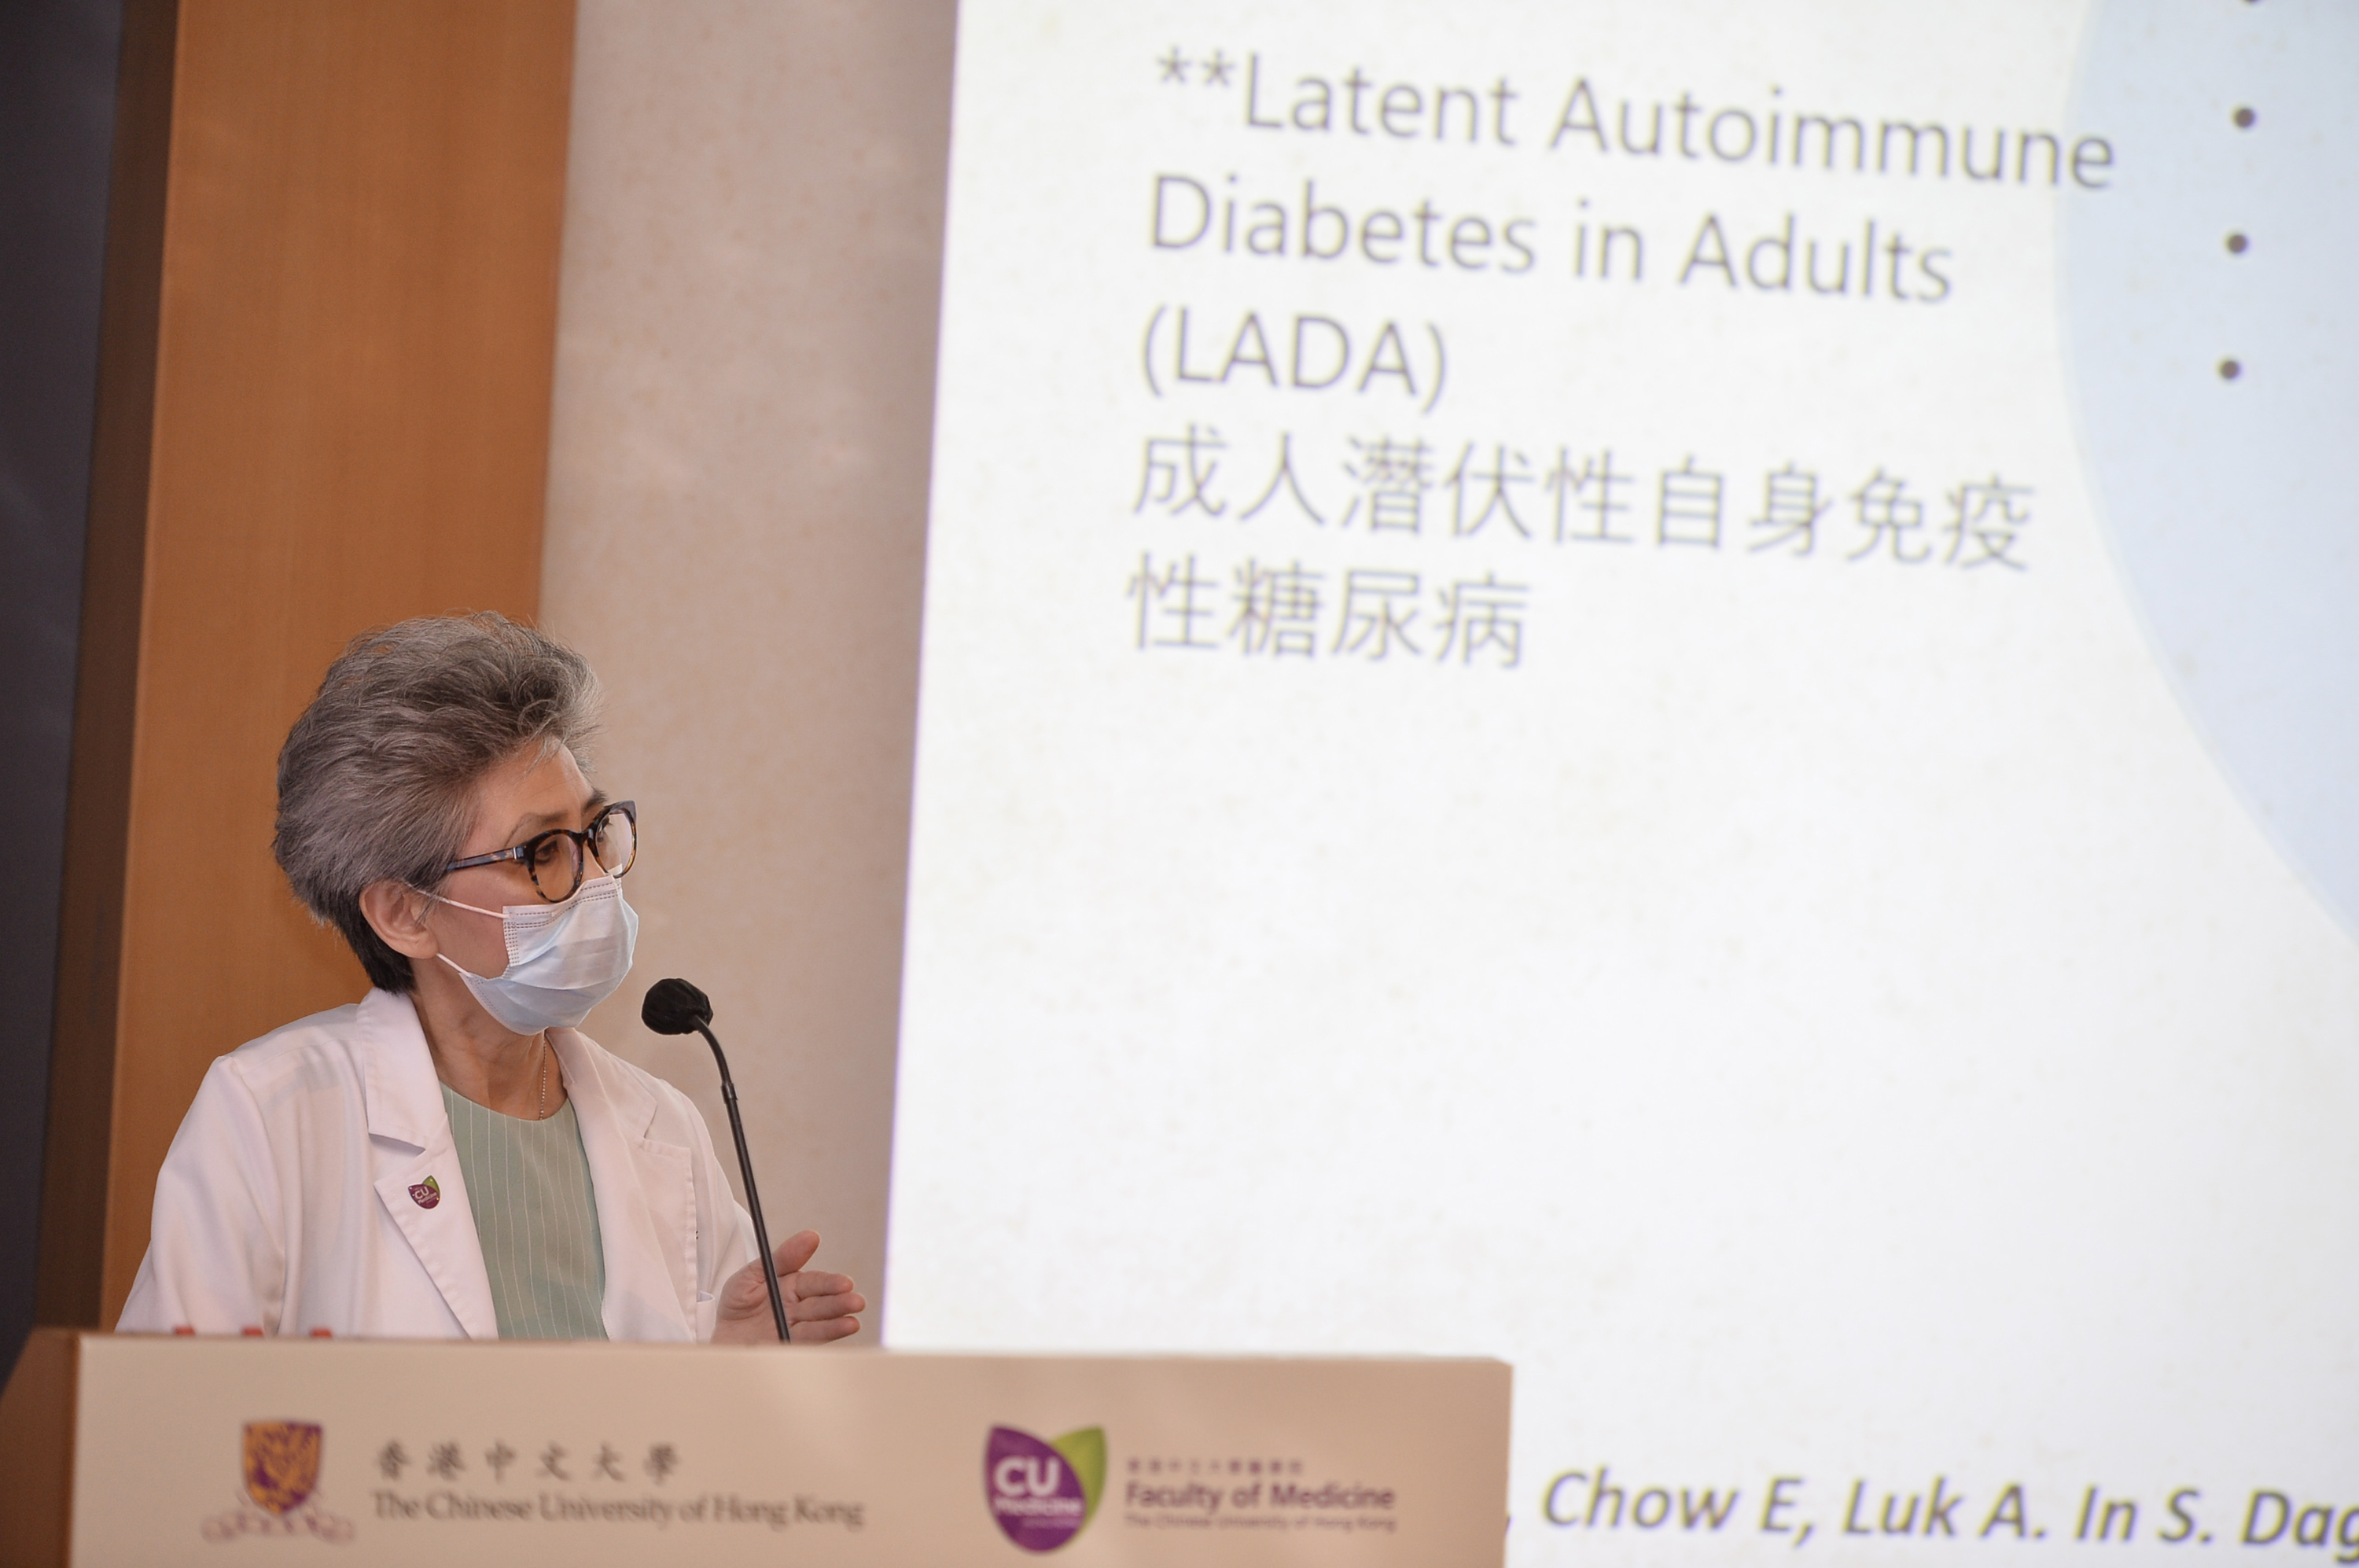 Professor Juliana CHAN highlights that every diabetic person is different, especially the case in young people who may have complex causes, such as environmental, genetic, lifestyles and psychosocial stress that explain their early onset of diabetes. Therefore, defining these causes is critically important to personalise care for better outcomes.